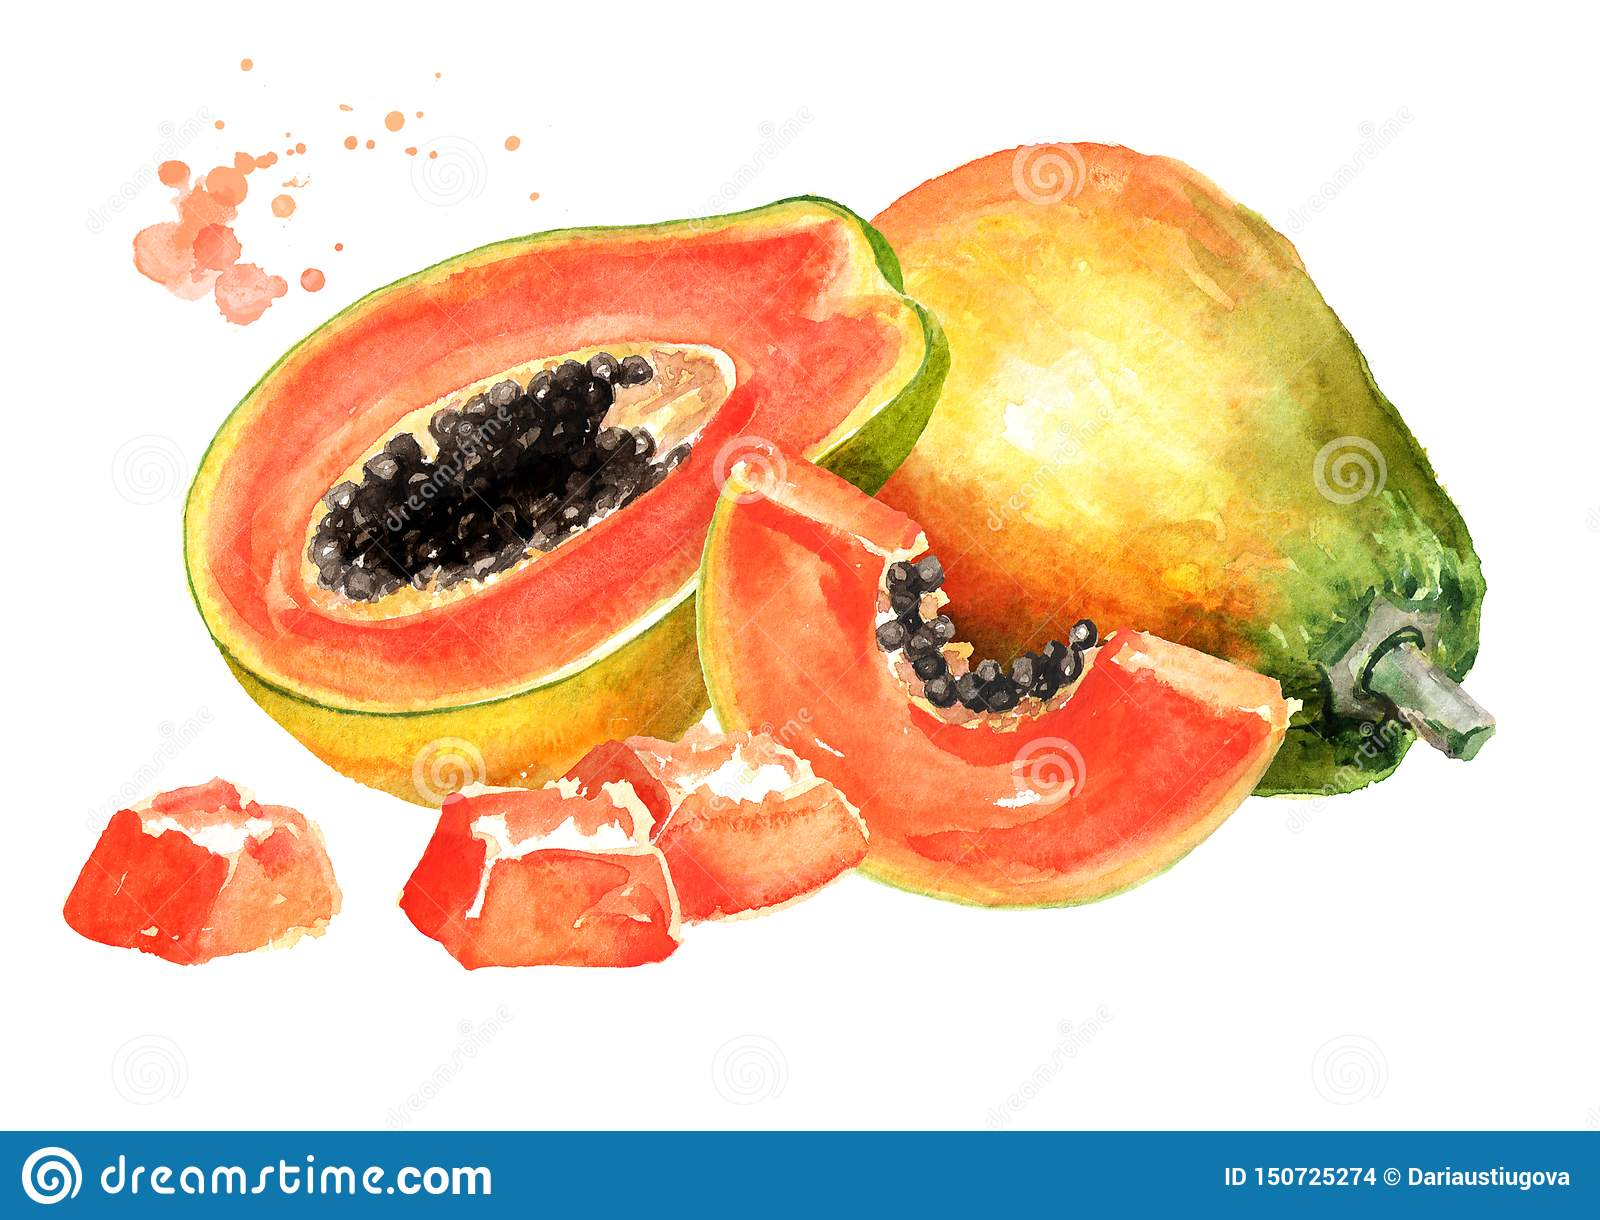 Whole, half and sliced sweet ripe papaya fruit. Watercolor hand drawn illustration isolated on white background